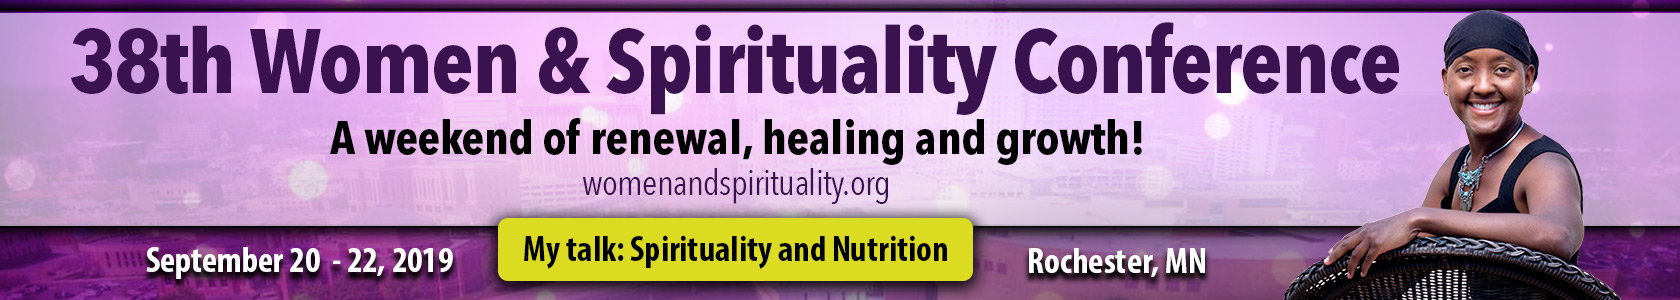 Women & Spirituality Conference 2019